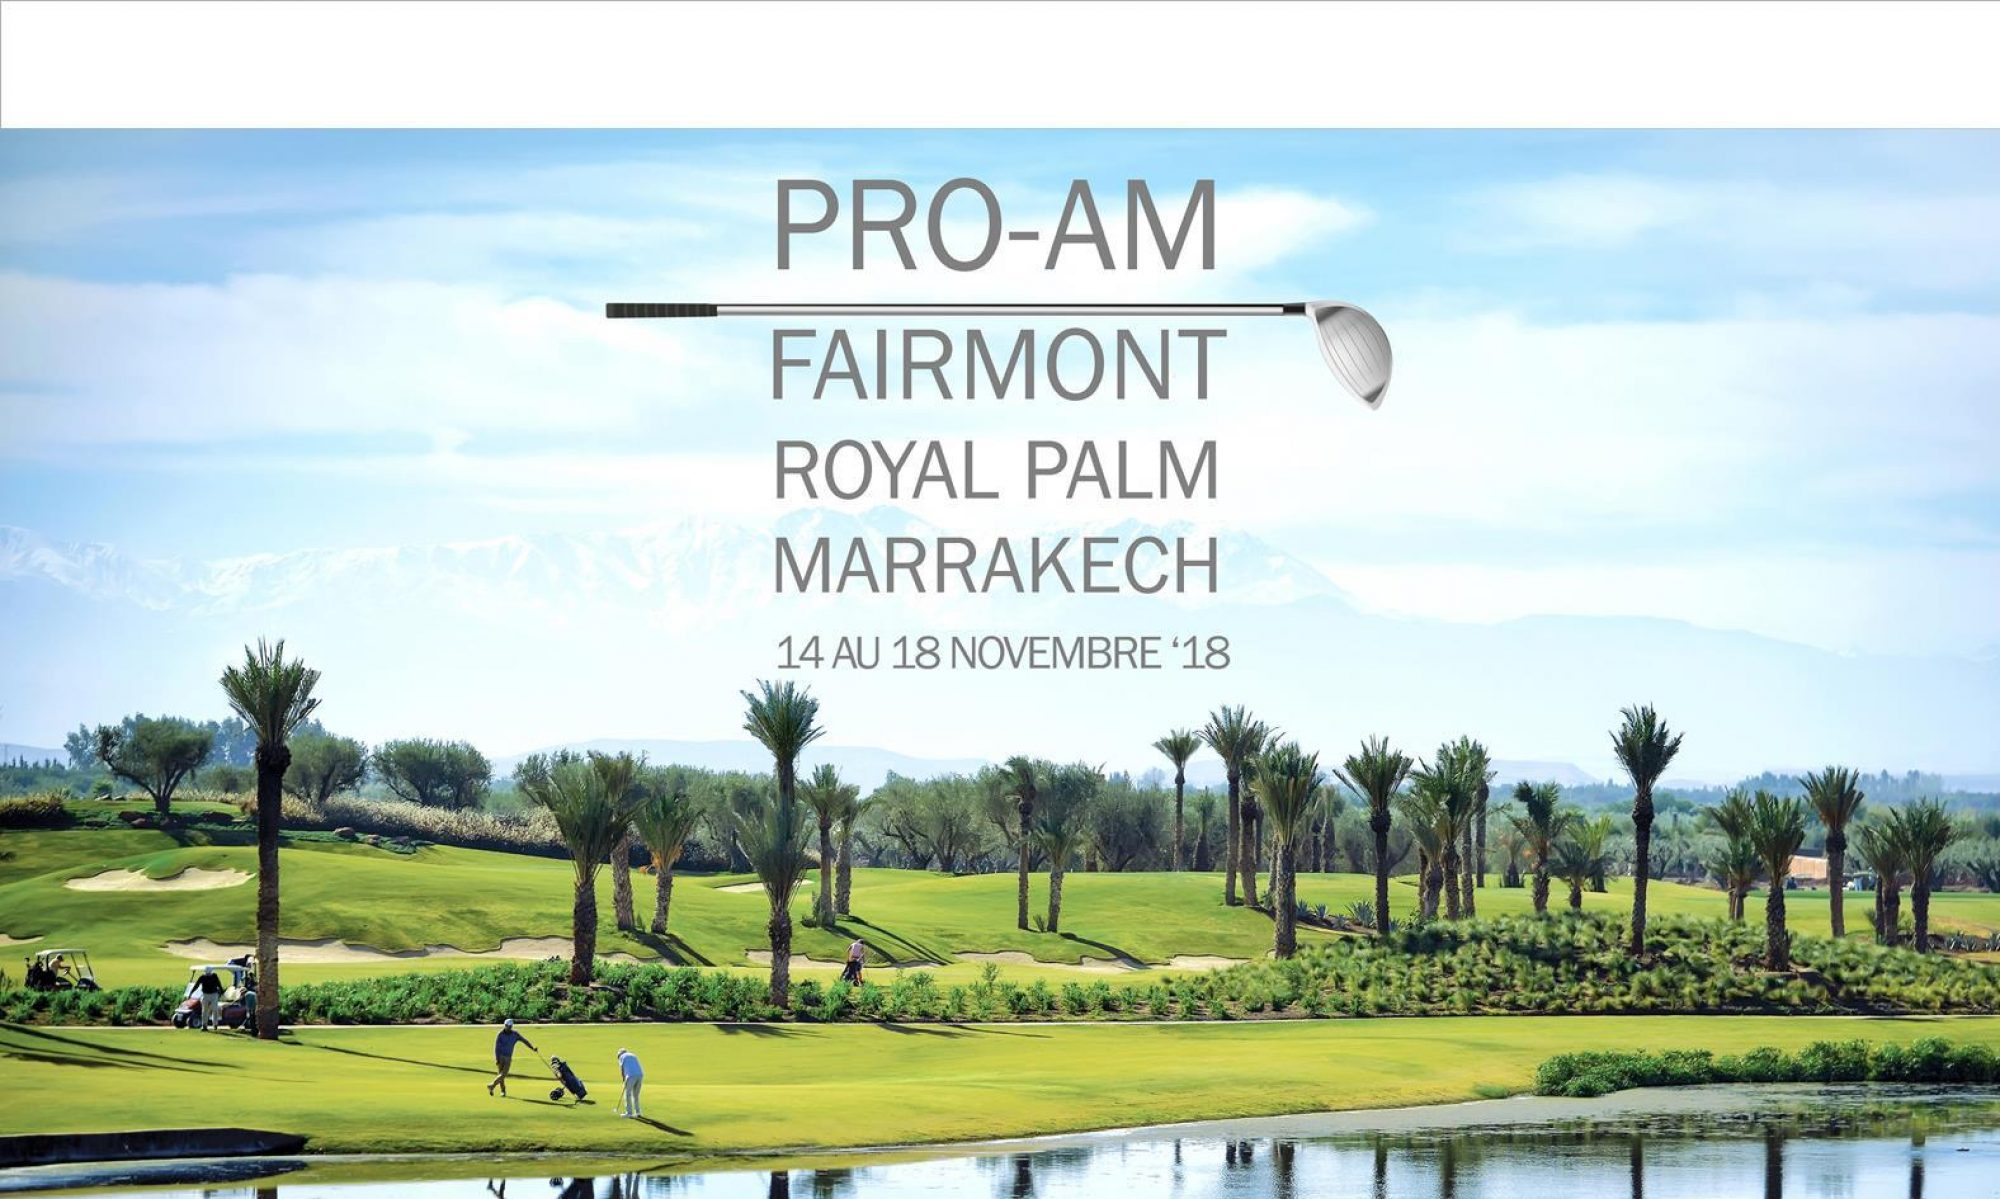 PRO-AM FAIRMONT ROYAL PALM MARRAKECH